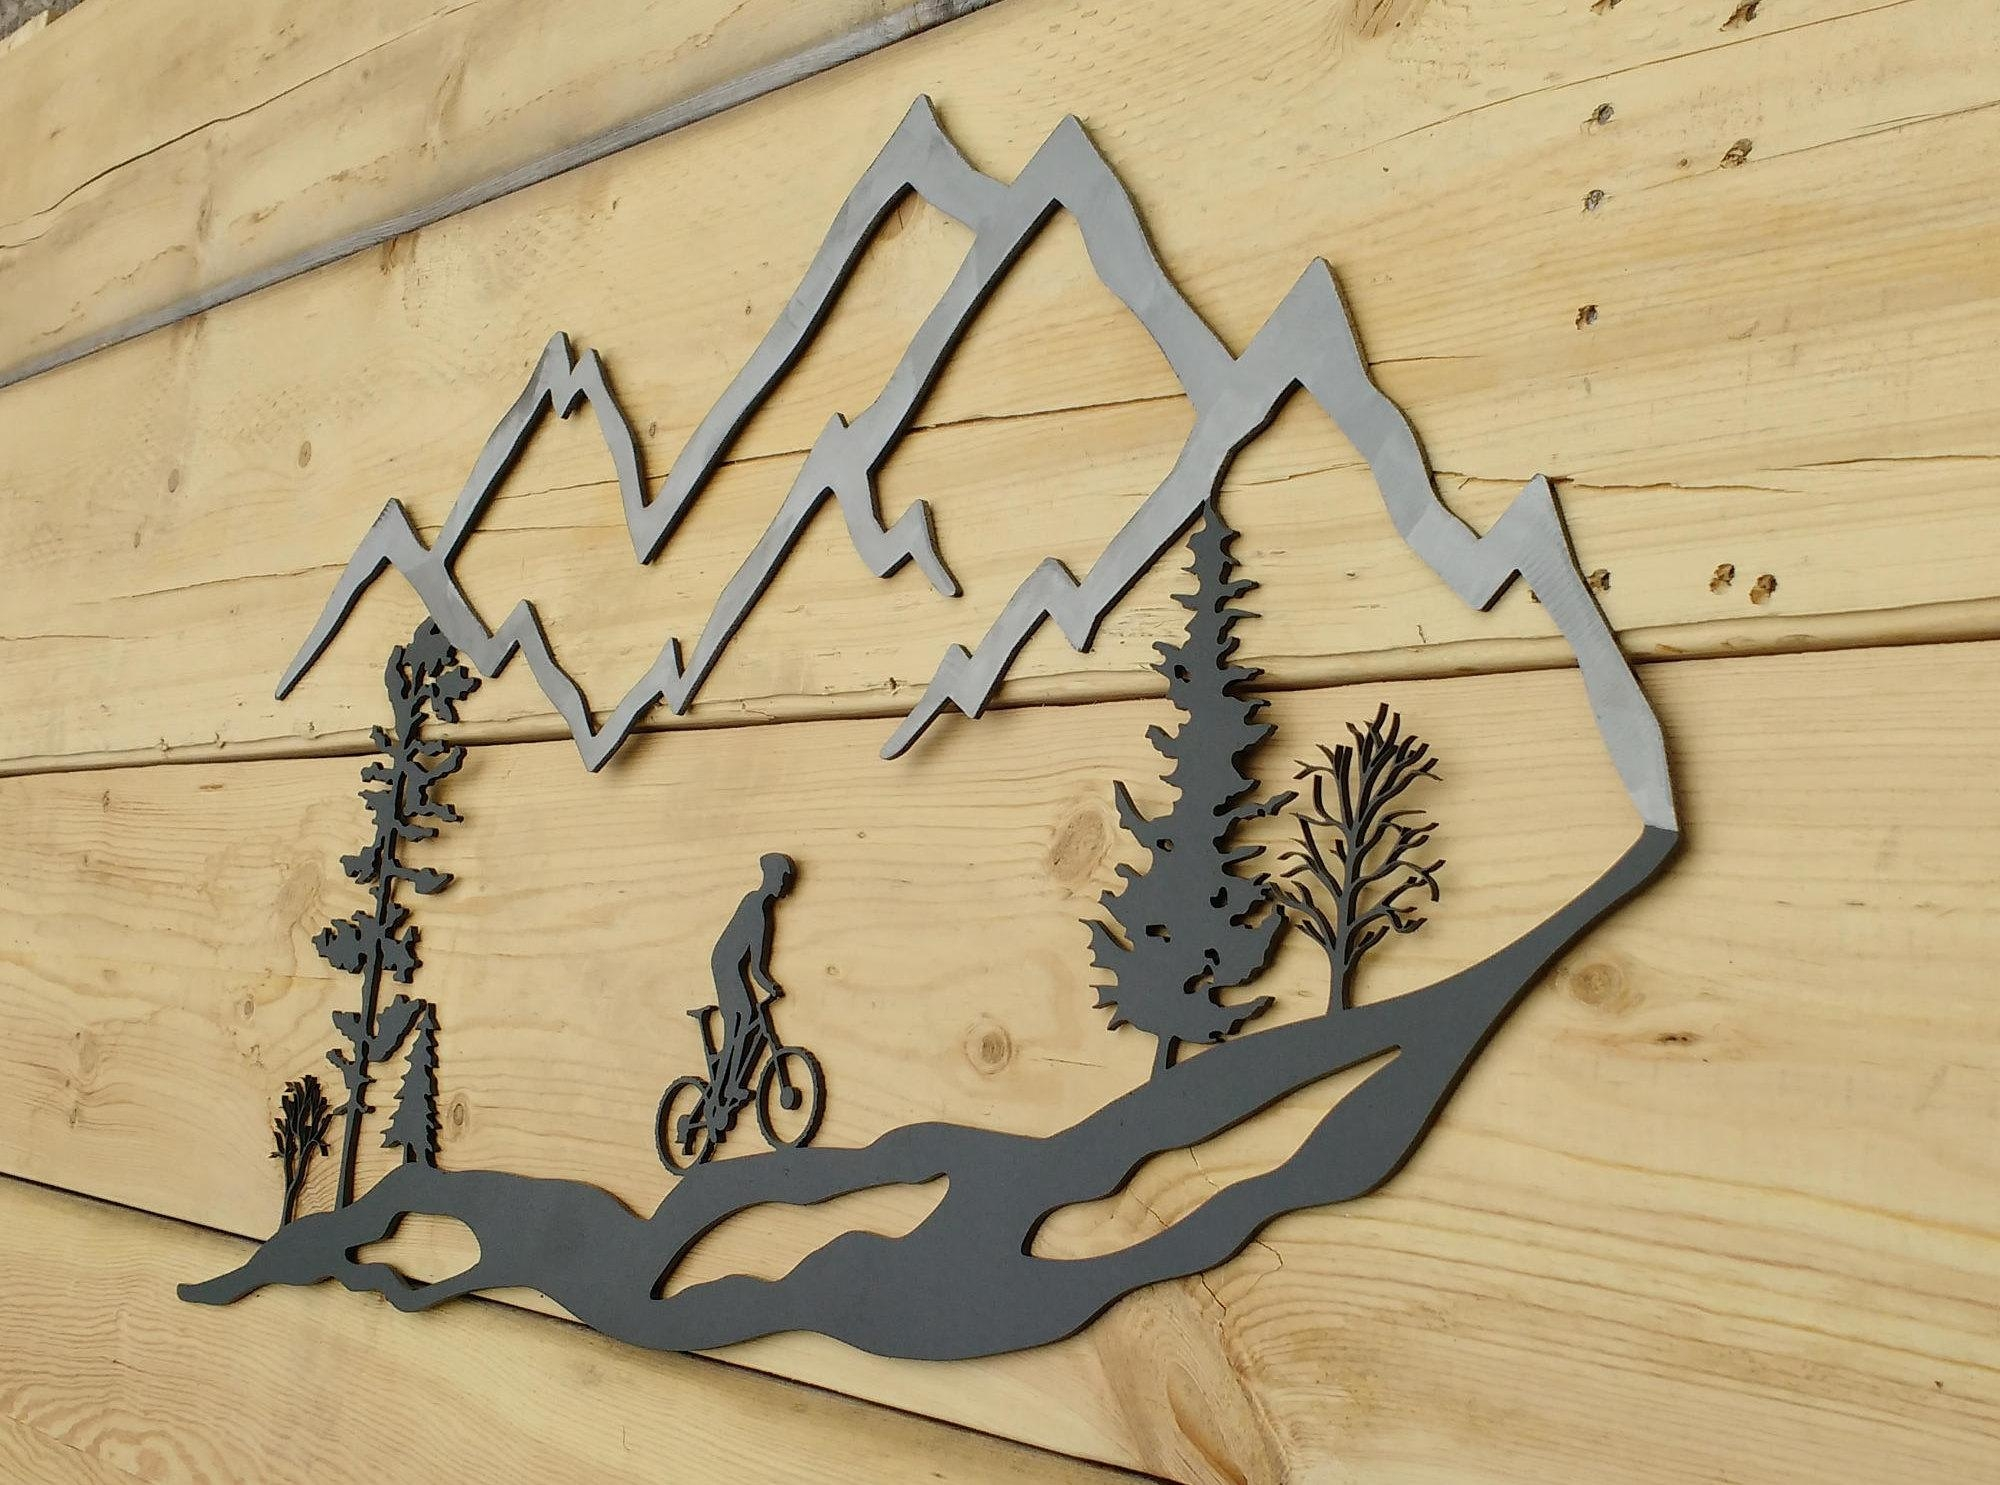 Wall Art Ideas: Bike Wall Art (Explore #18 of 20 Photos)